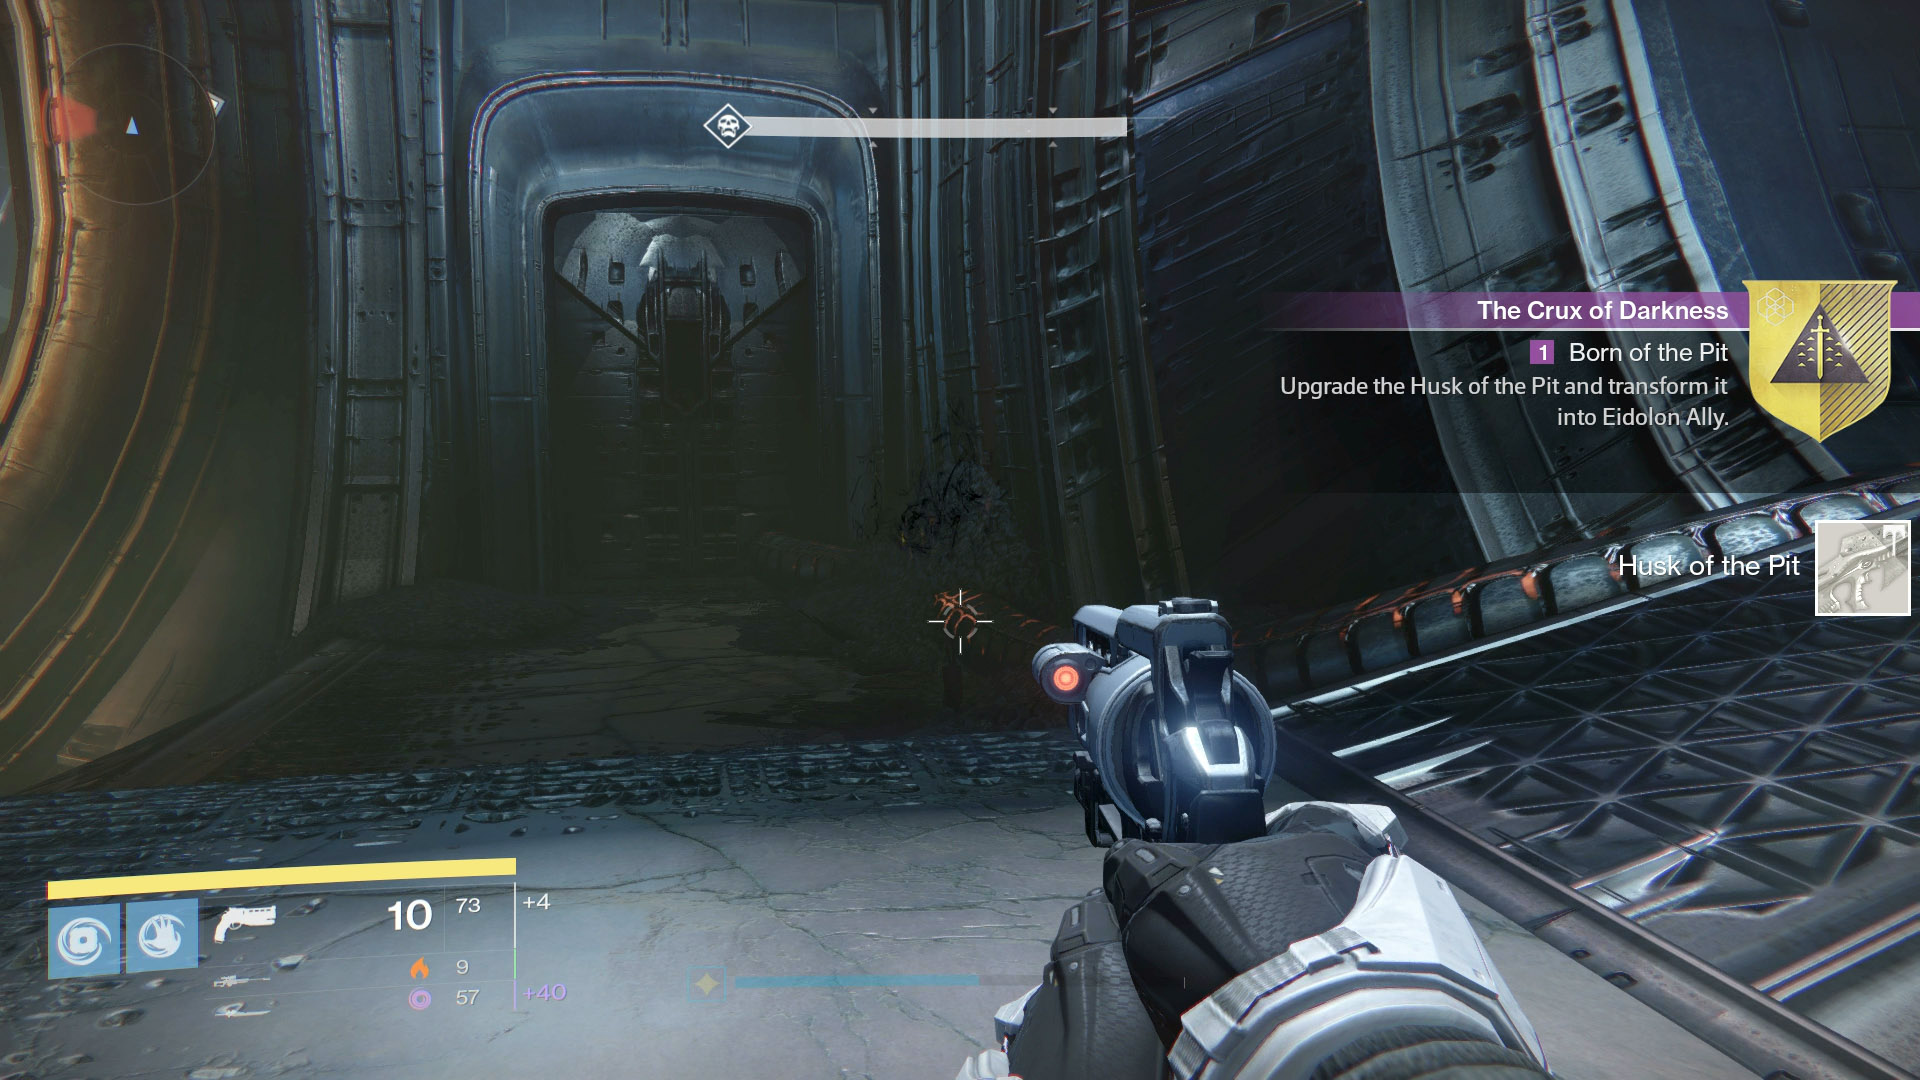 You can farm for the Husk of the Pit anywhere, but a good place is toward the end of Shrine of Oryx, where the Ogre spawns.